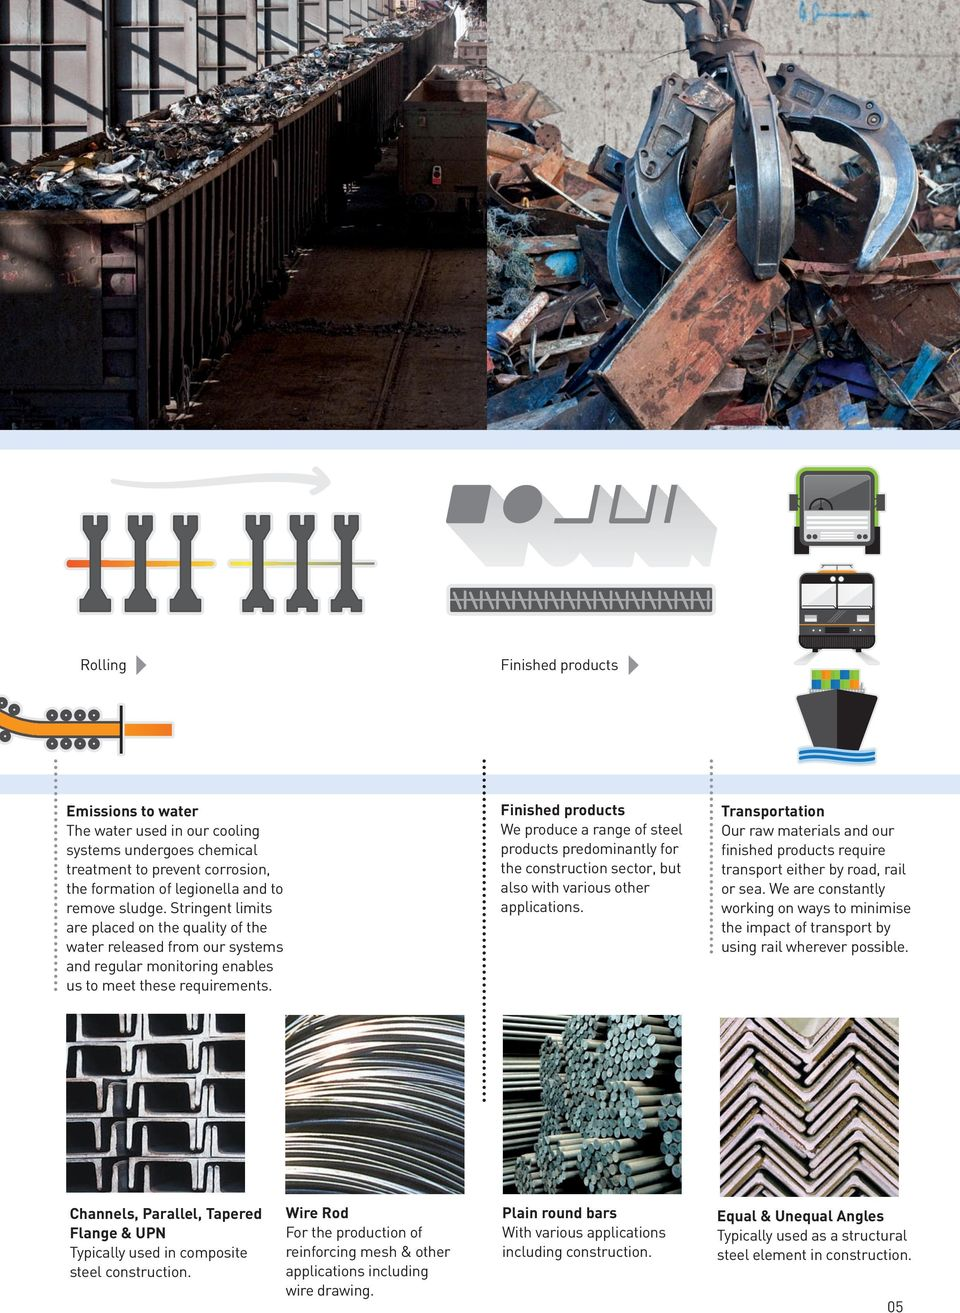 Finished products We produce a range of steel products predominantly for the construction sector, but also with various other applications.